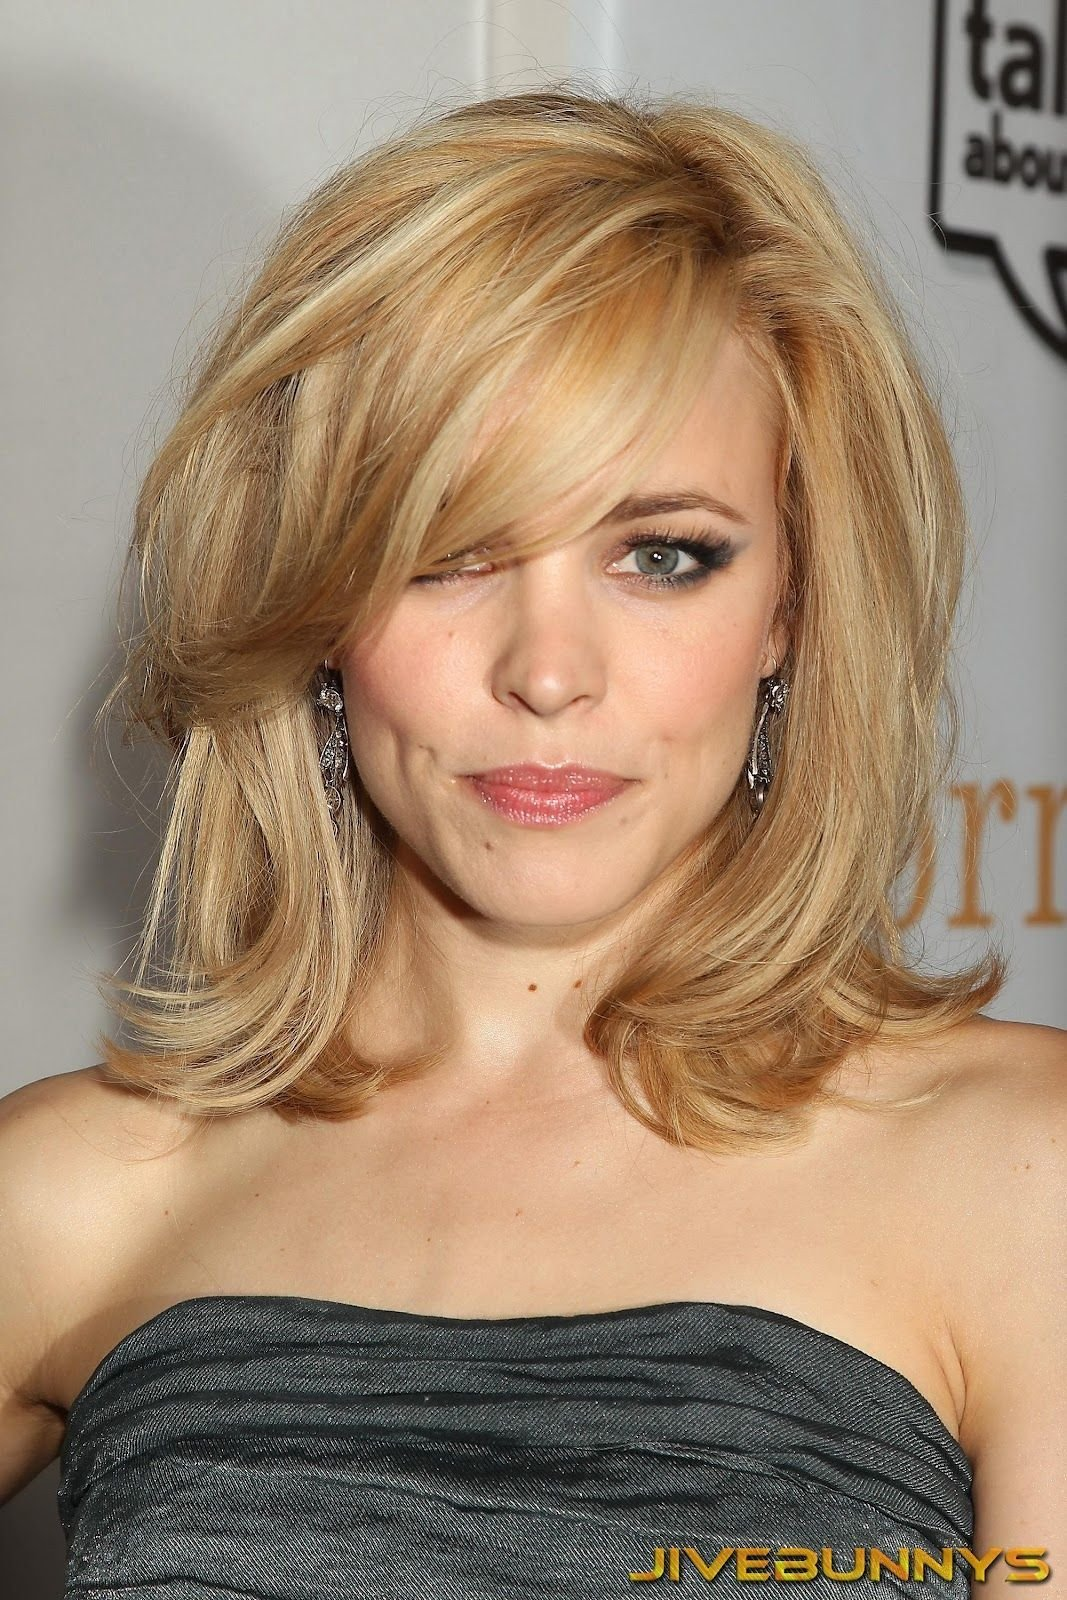 The Best Luxurious Glitter And Glamour Rachel Mcadams Fabulous Pictures